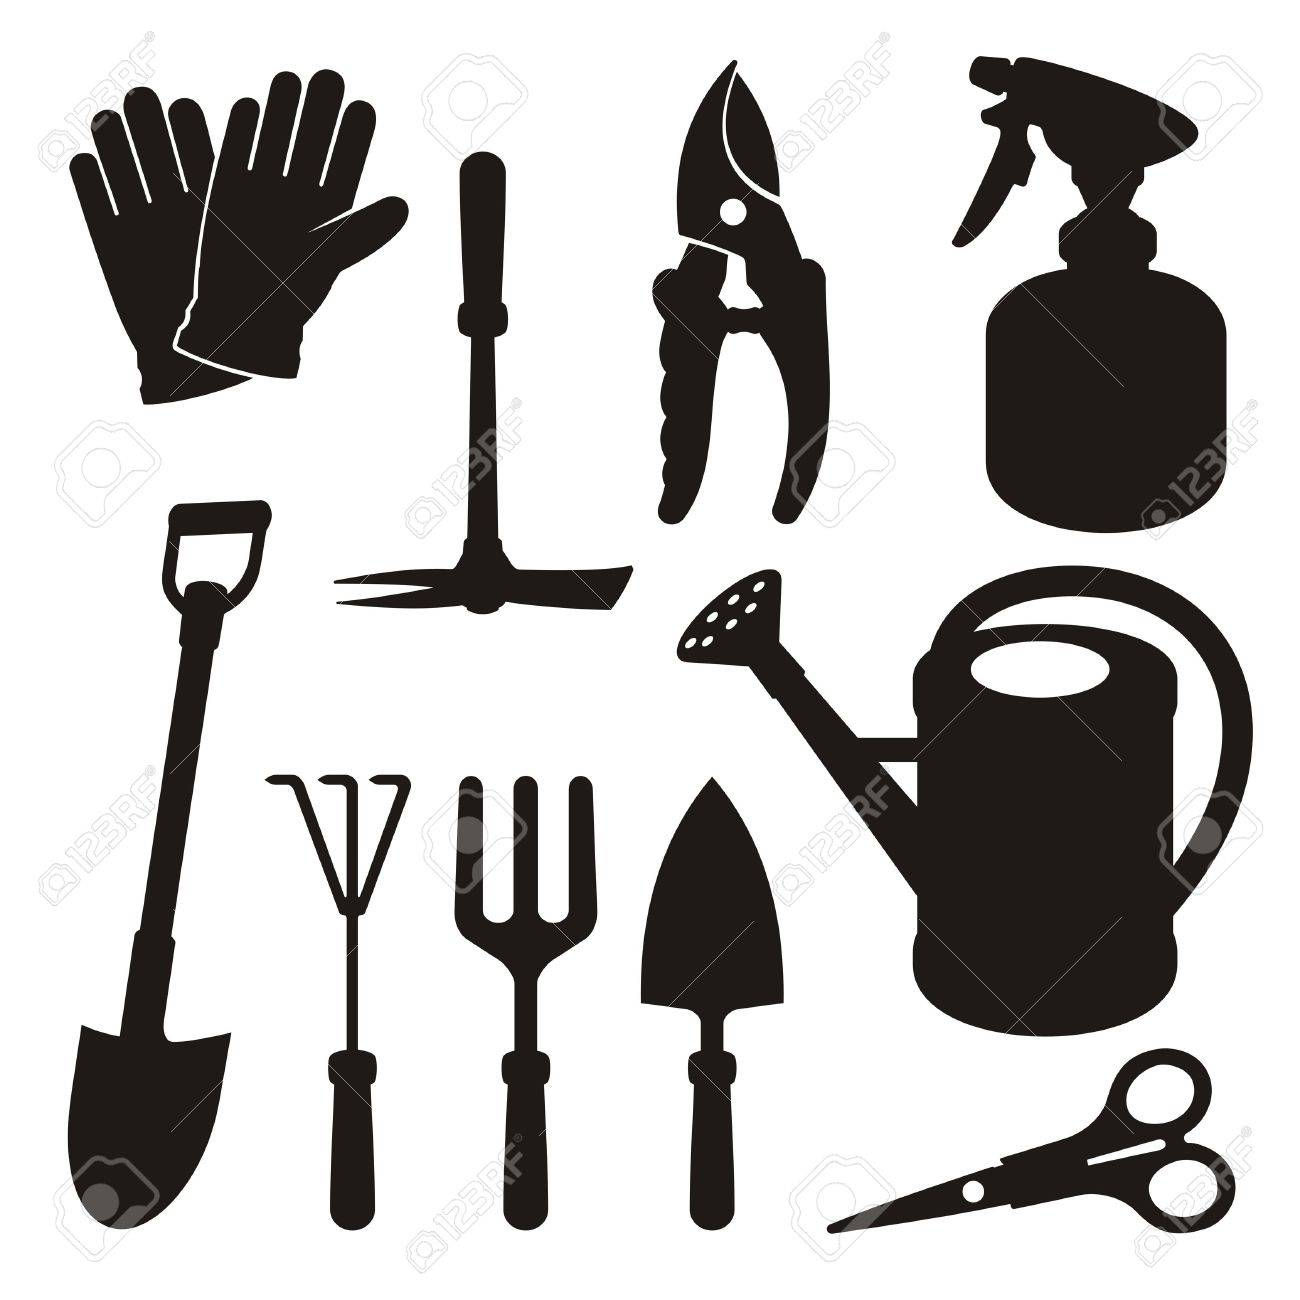 A set of gardening tool silhouette icons isolated on white background. - 14289834